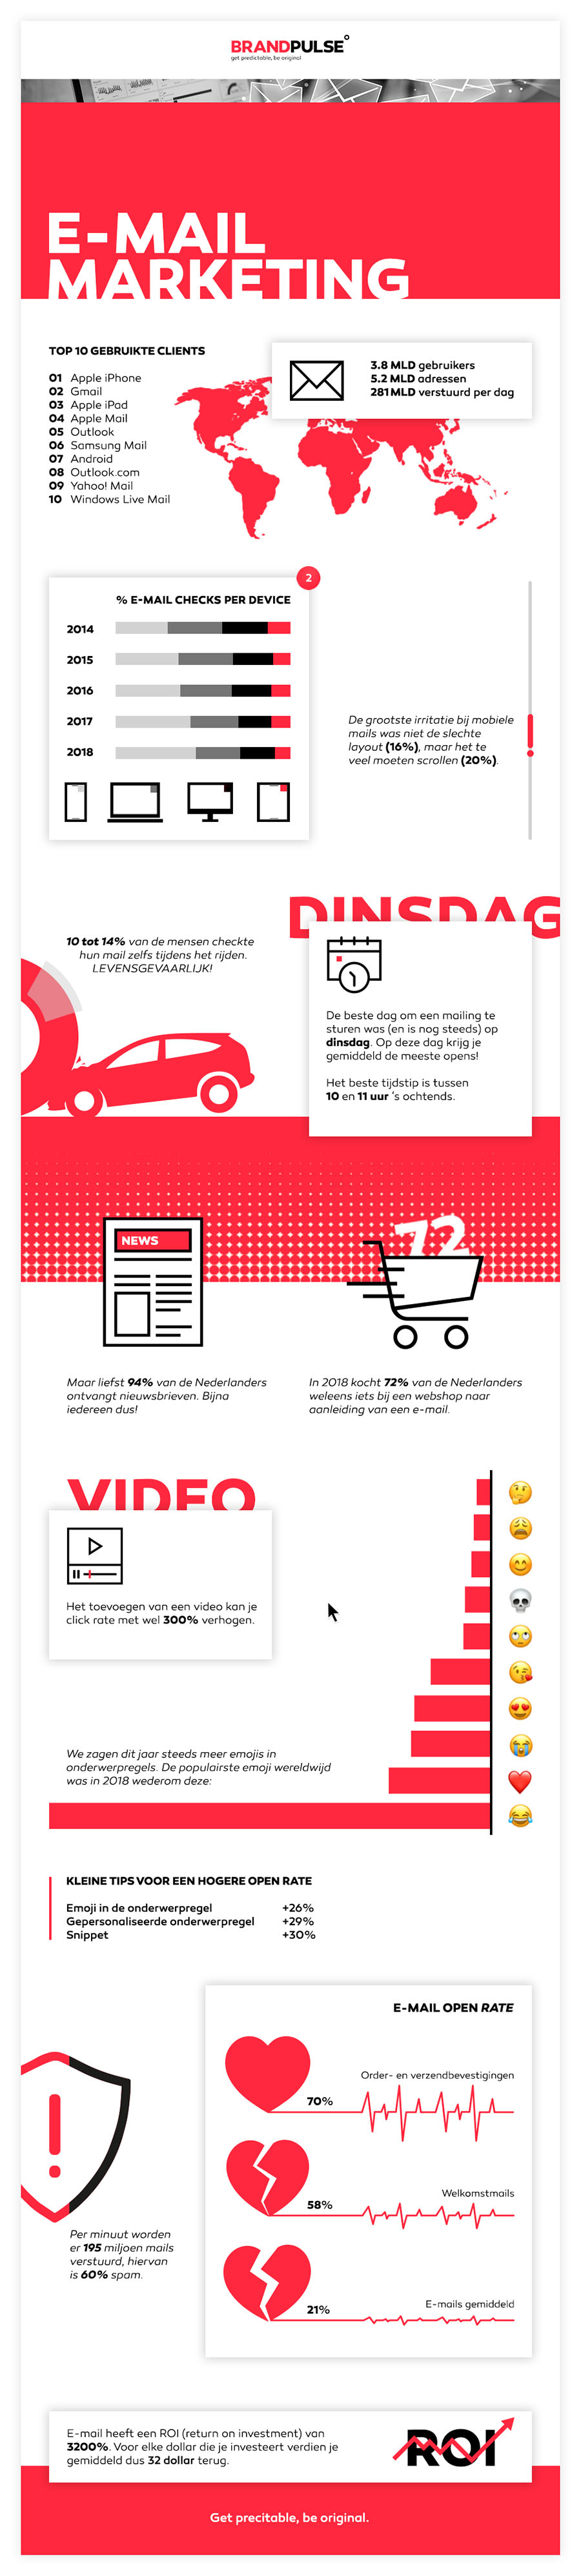 marketingpulse december infographic 02